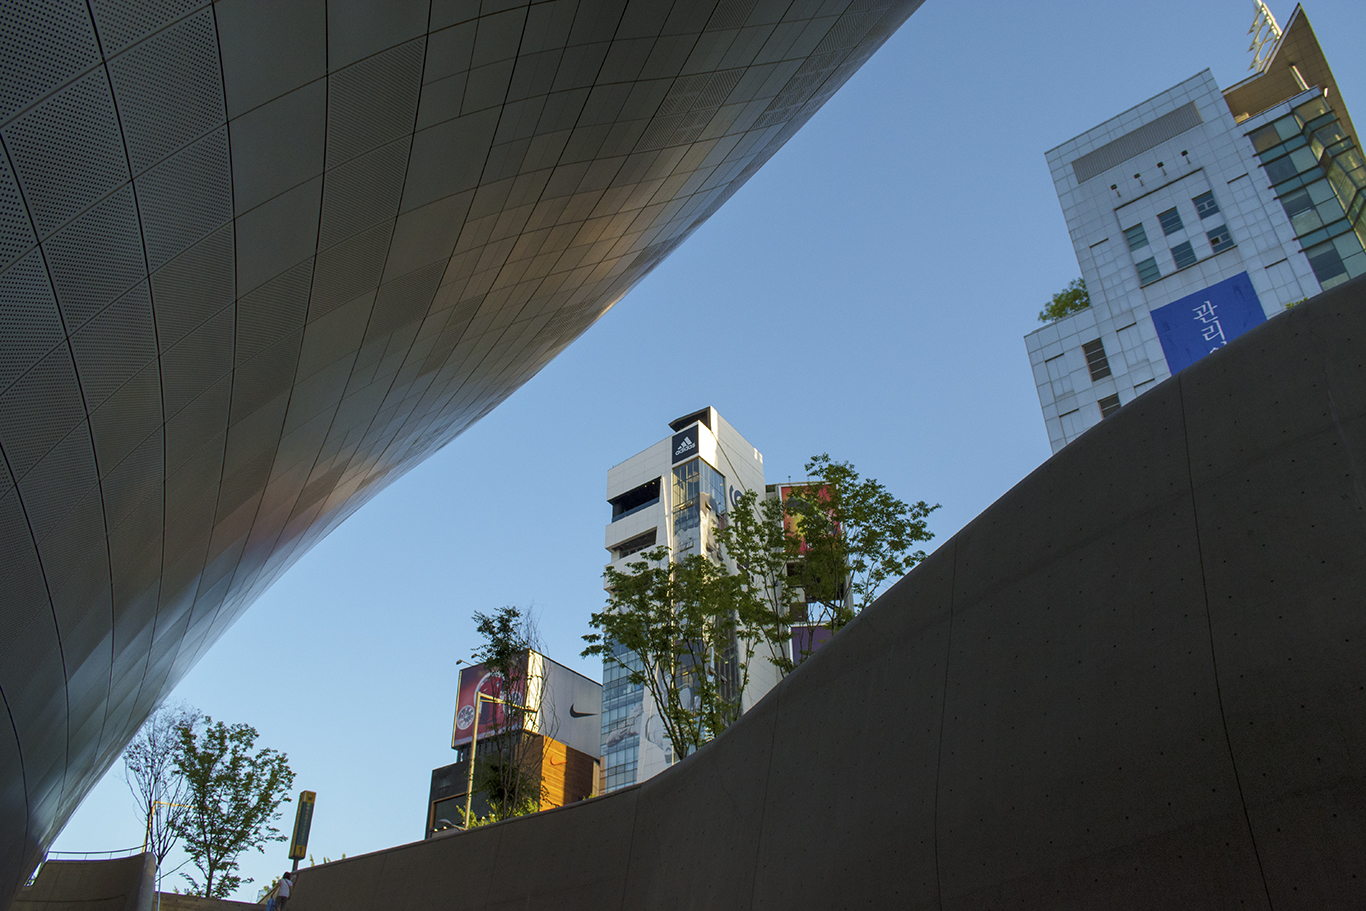 The Dongdaemun Design Plaza shot from the underground level facing the Art Halls in Seoul, South Korea. (CHRISTOPHER CAMERON/THE STATESMAN)